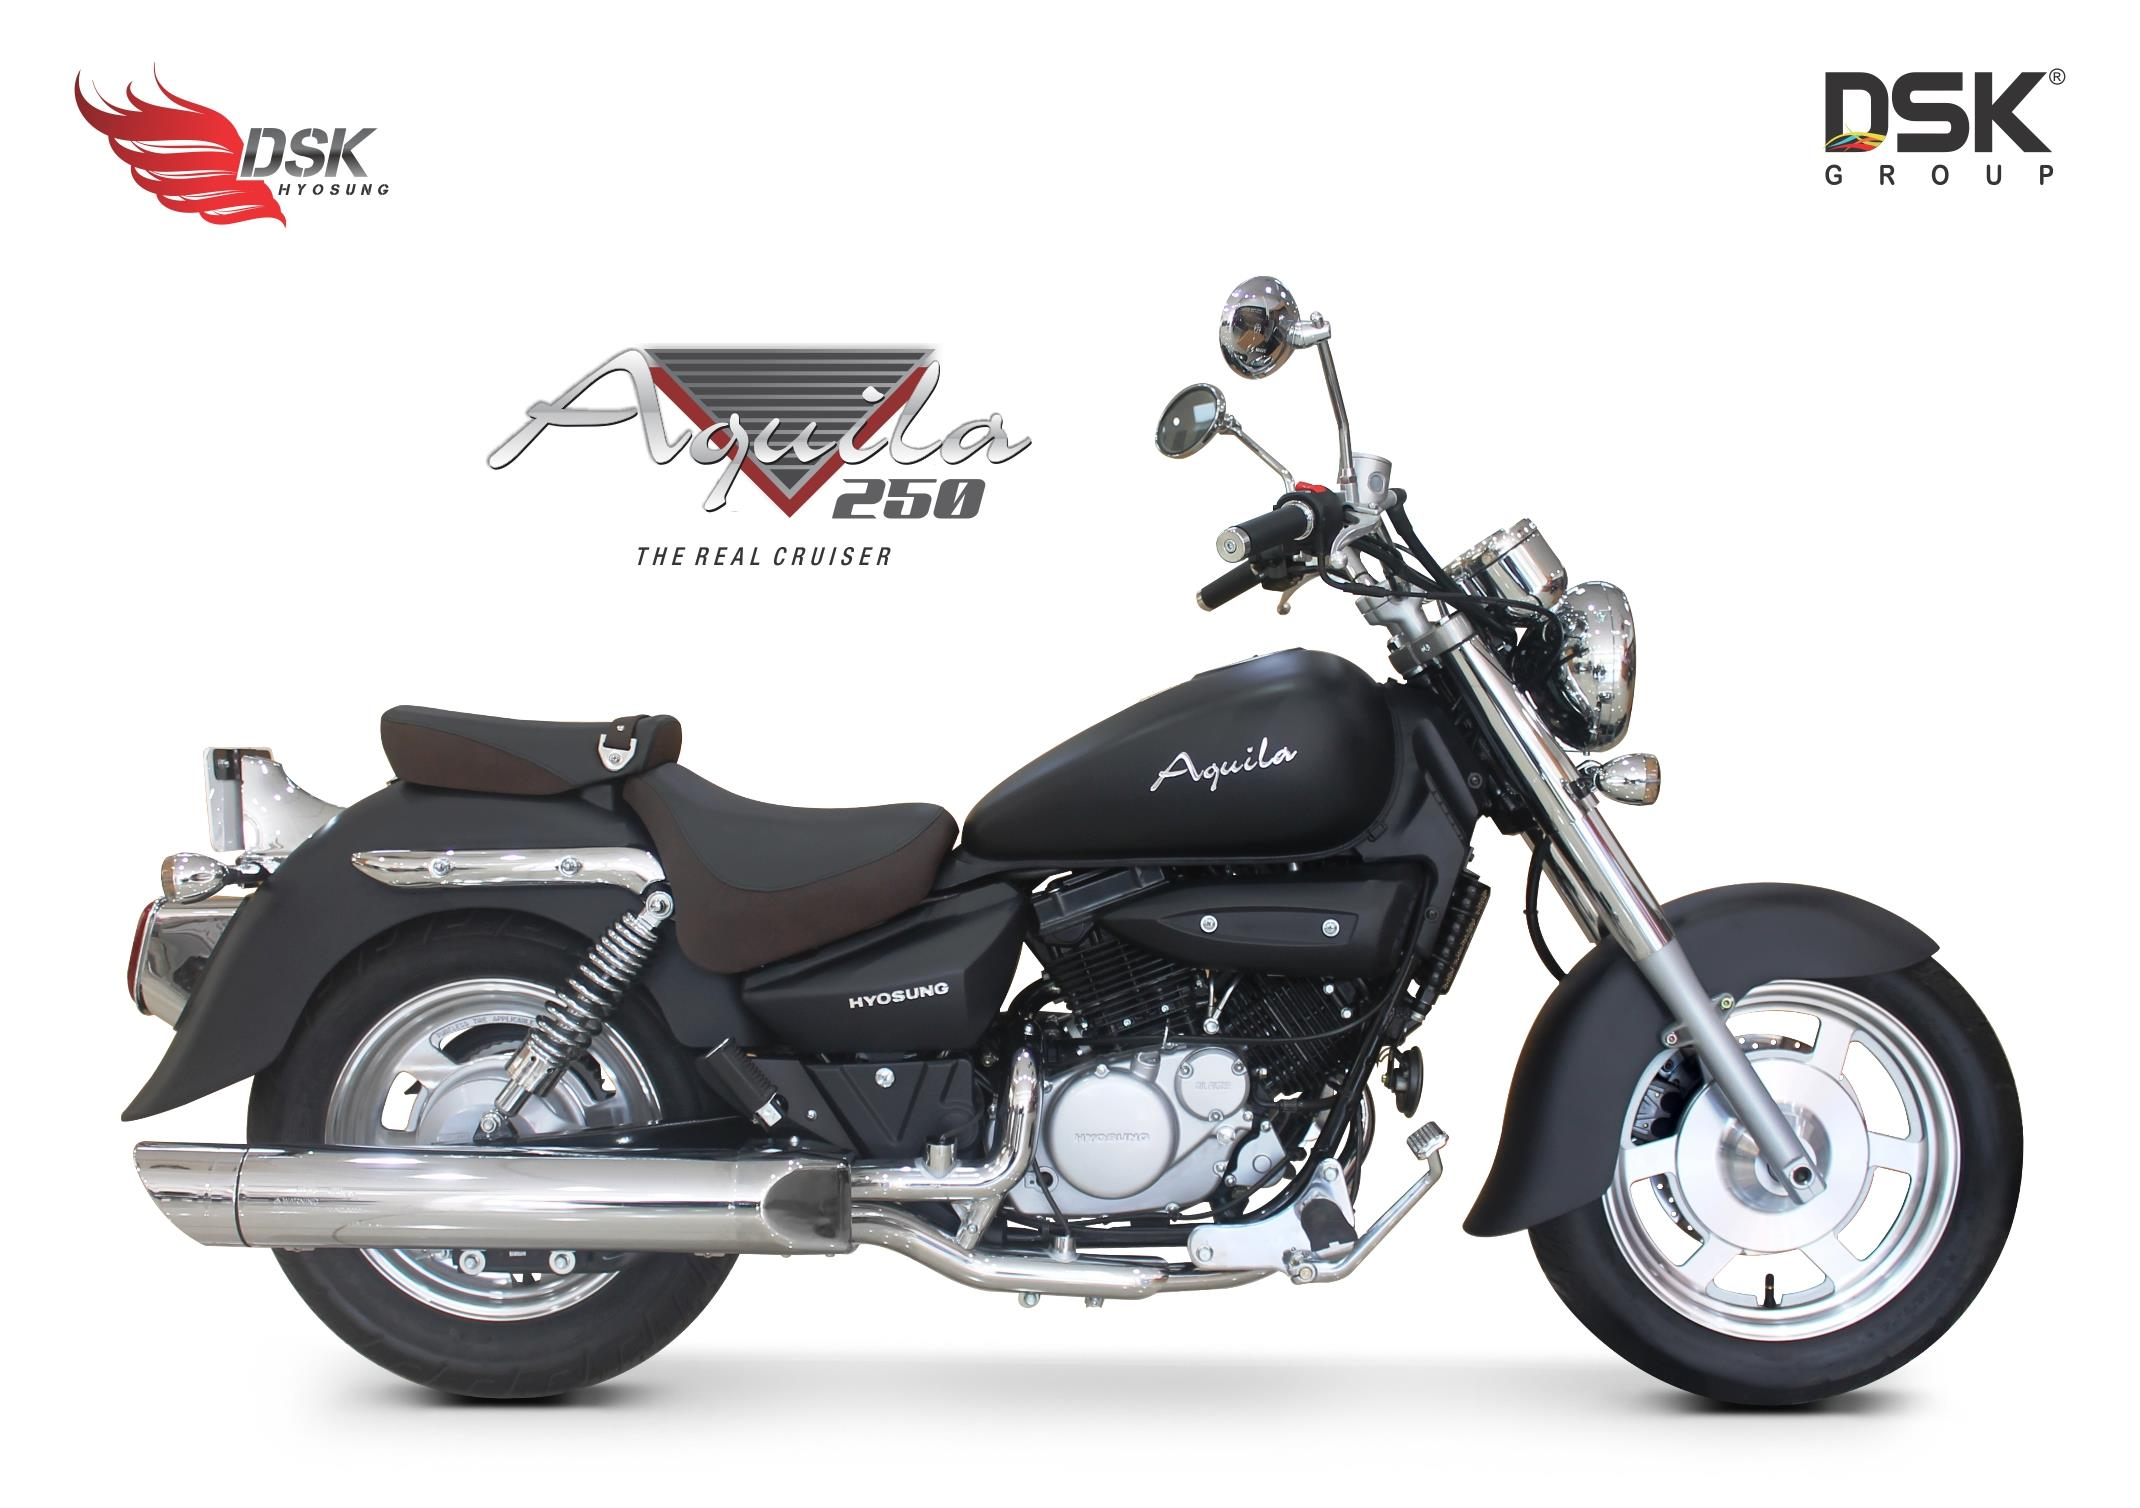 DSK Hyosung Aquila 250 limited edition launched at Rs 2.94 lakh